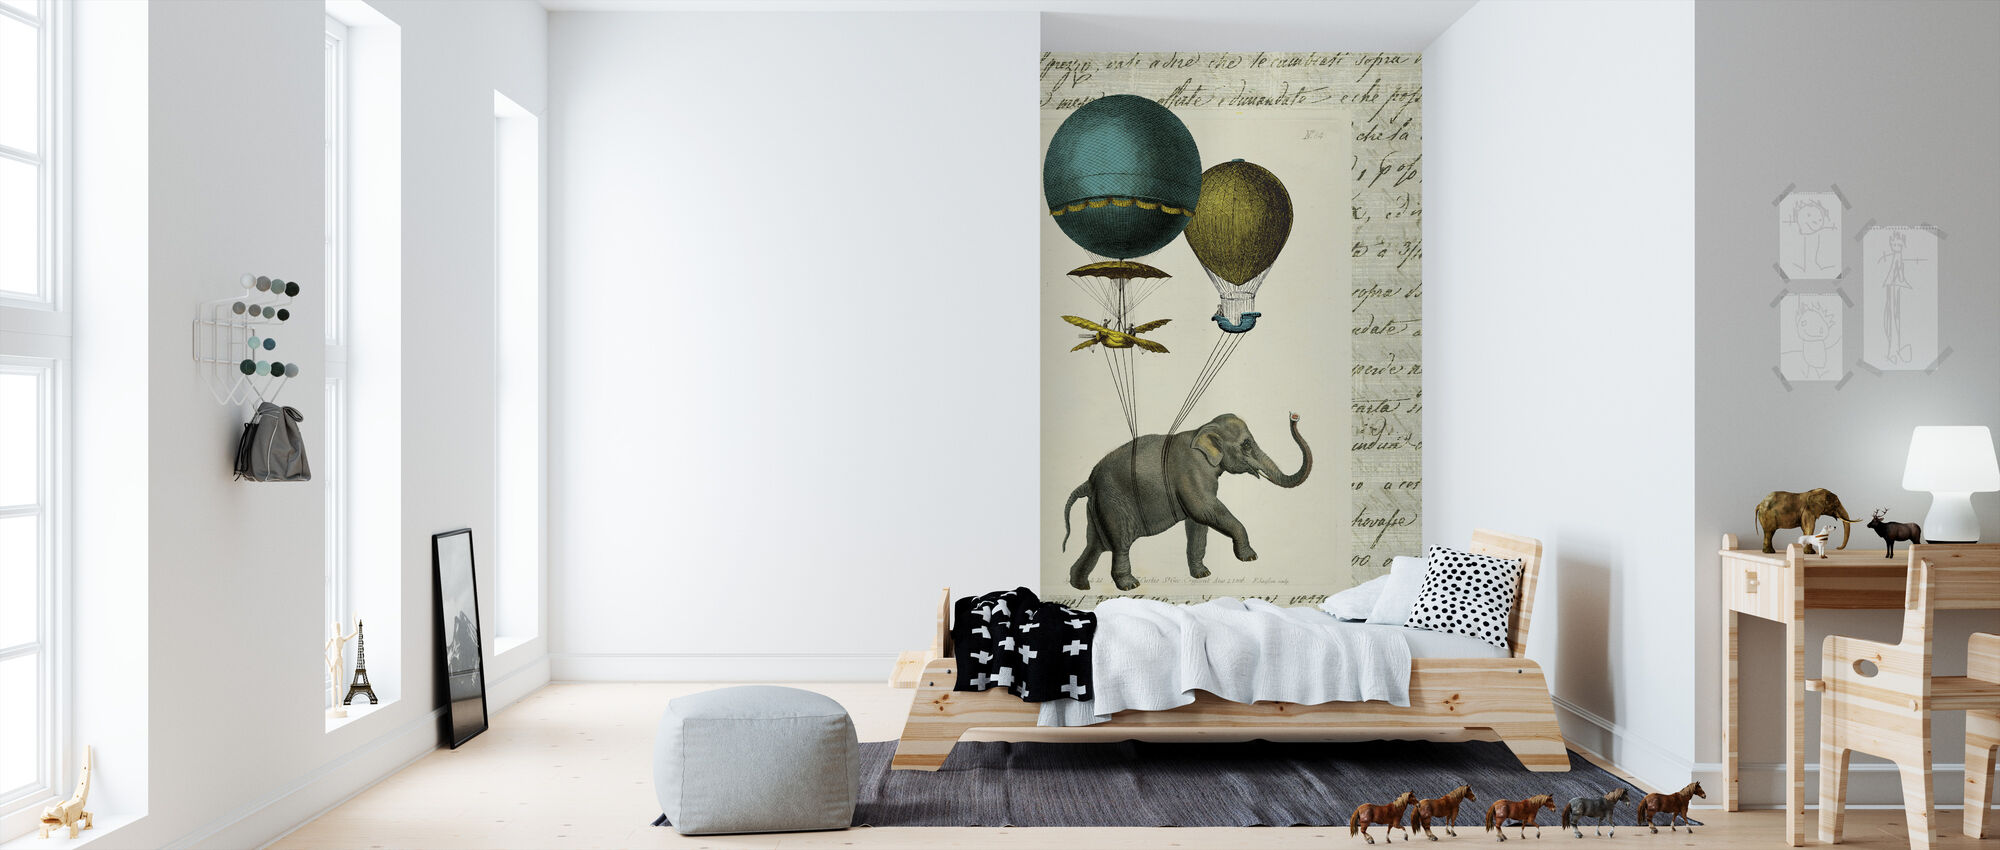 Elephant Ride 2 - Wallpaper - Kids Room